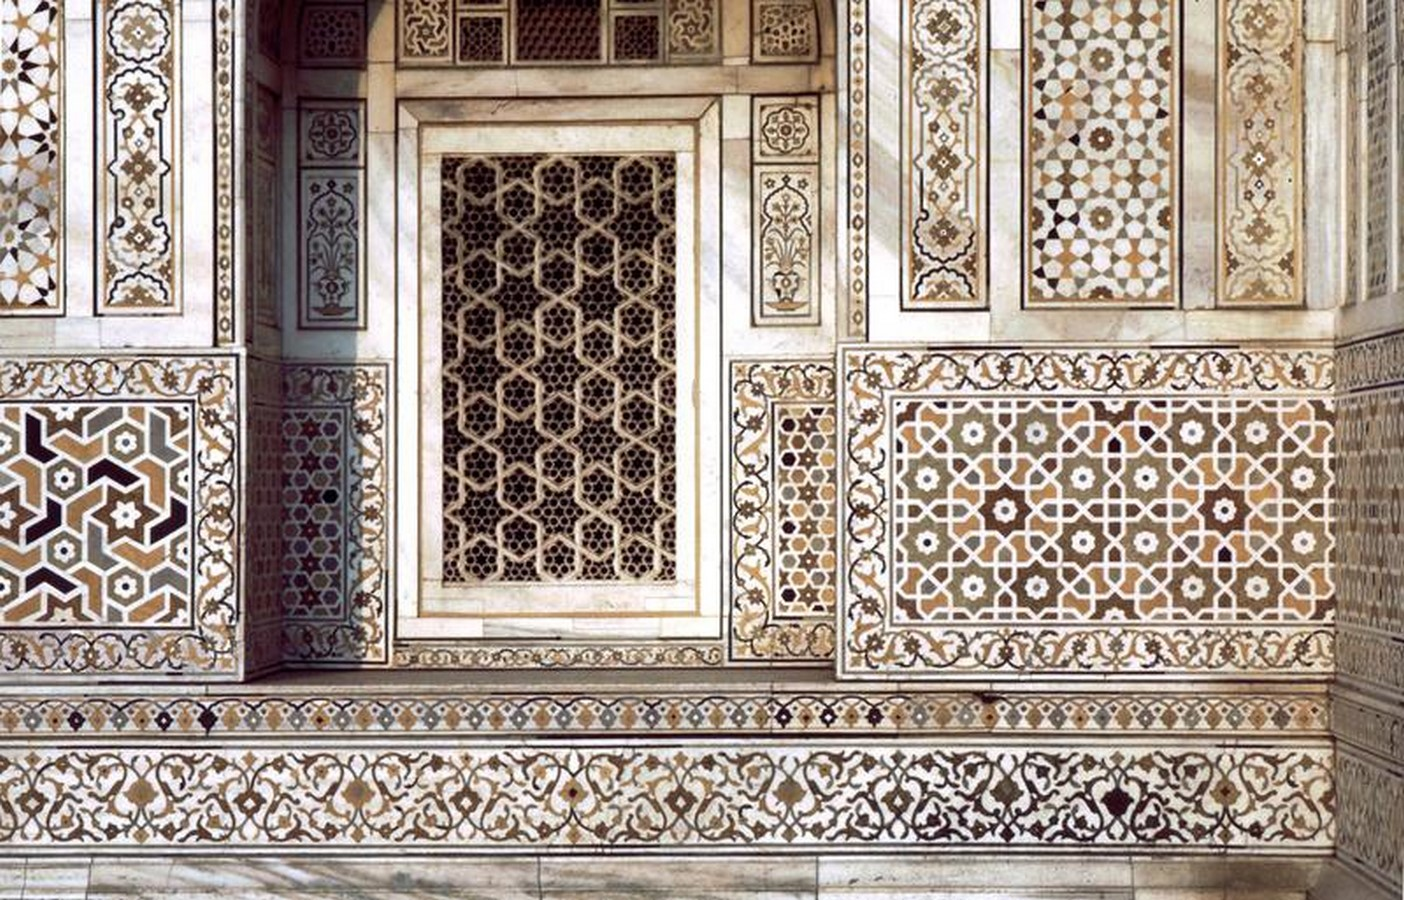 Evolution of ornamentation in Indian architecture - Sheet1